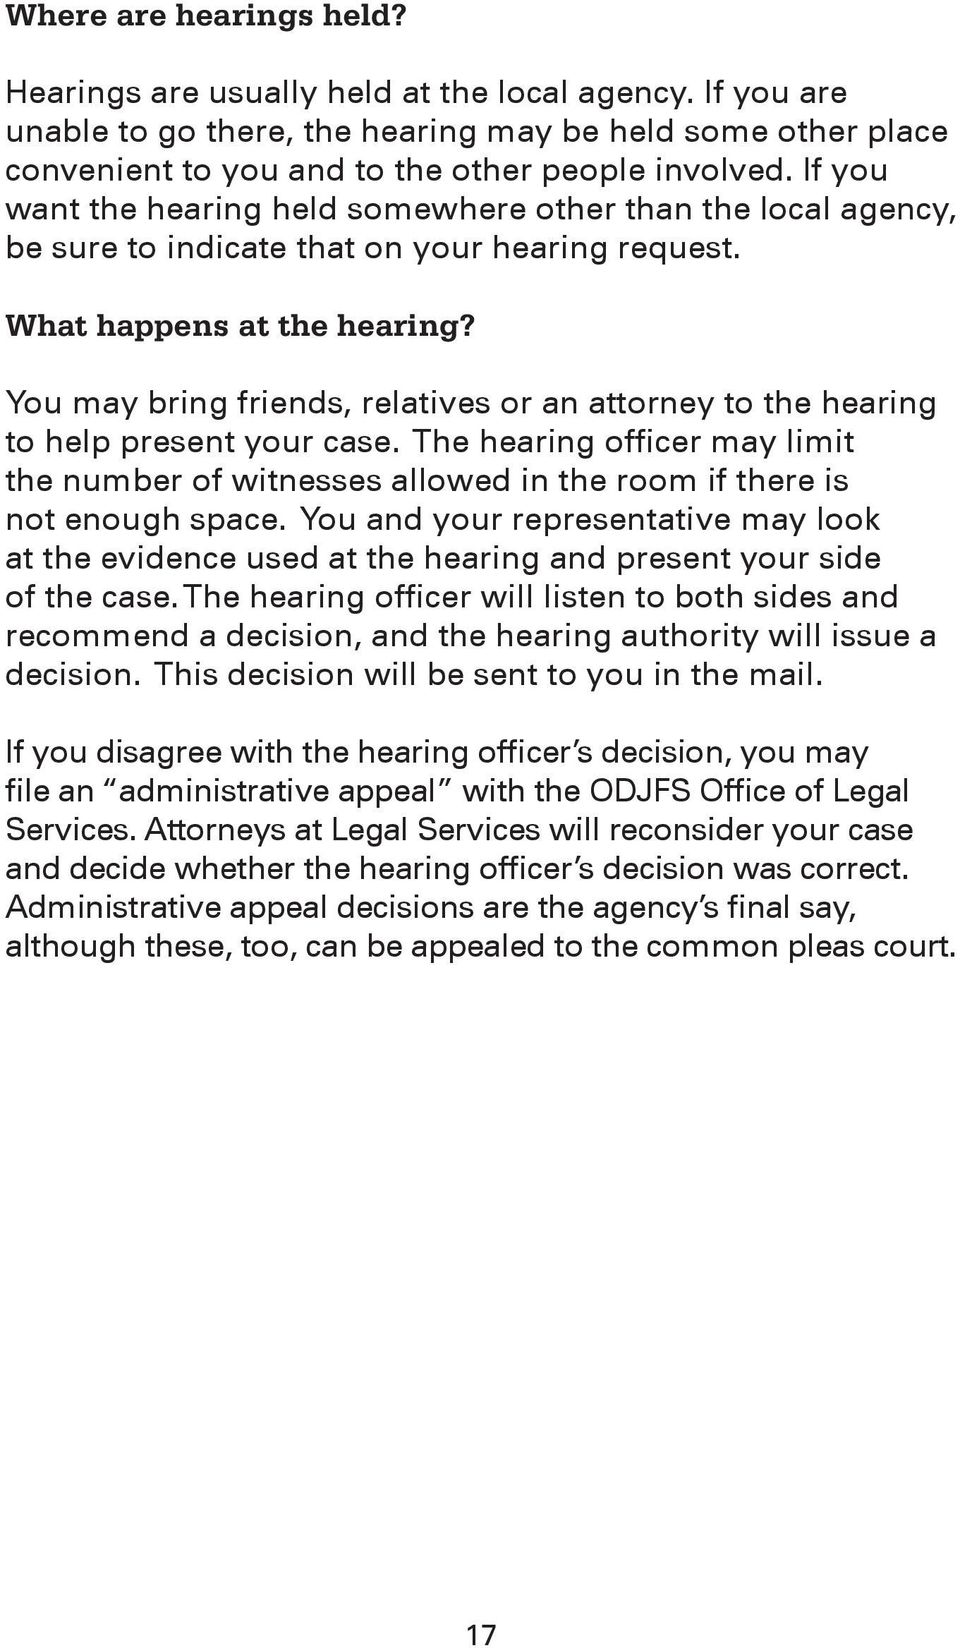 You may bring friends, relatives or an attorney to the hearing to help present your case. The hearing officer may limit the number of witnesses allowed in the room if there is not enough space.